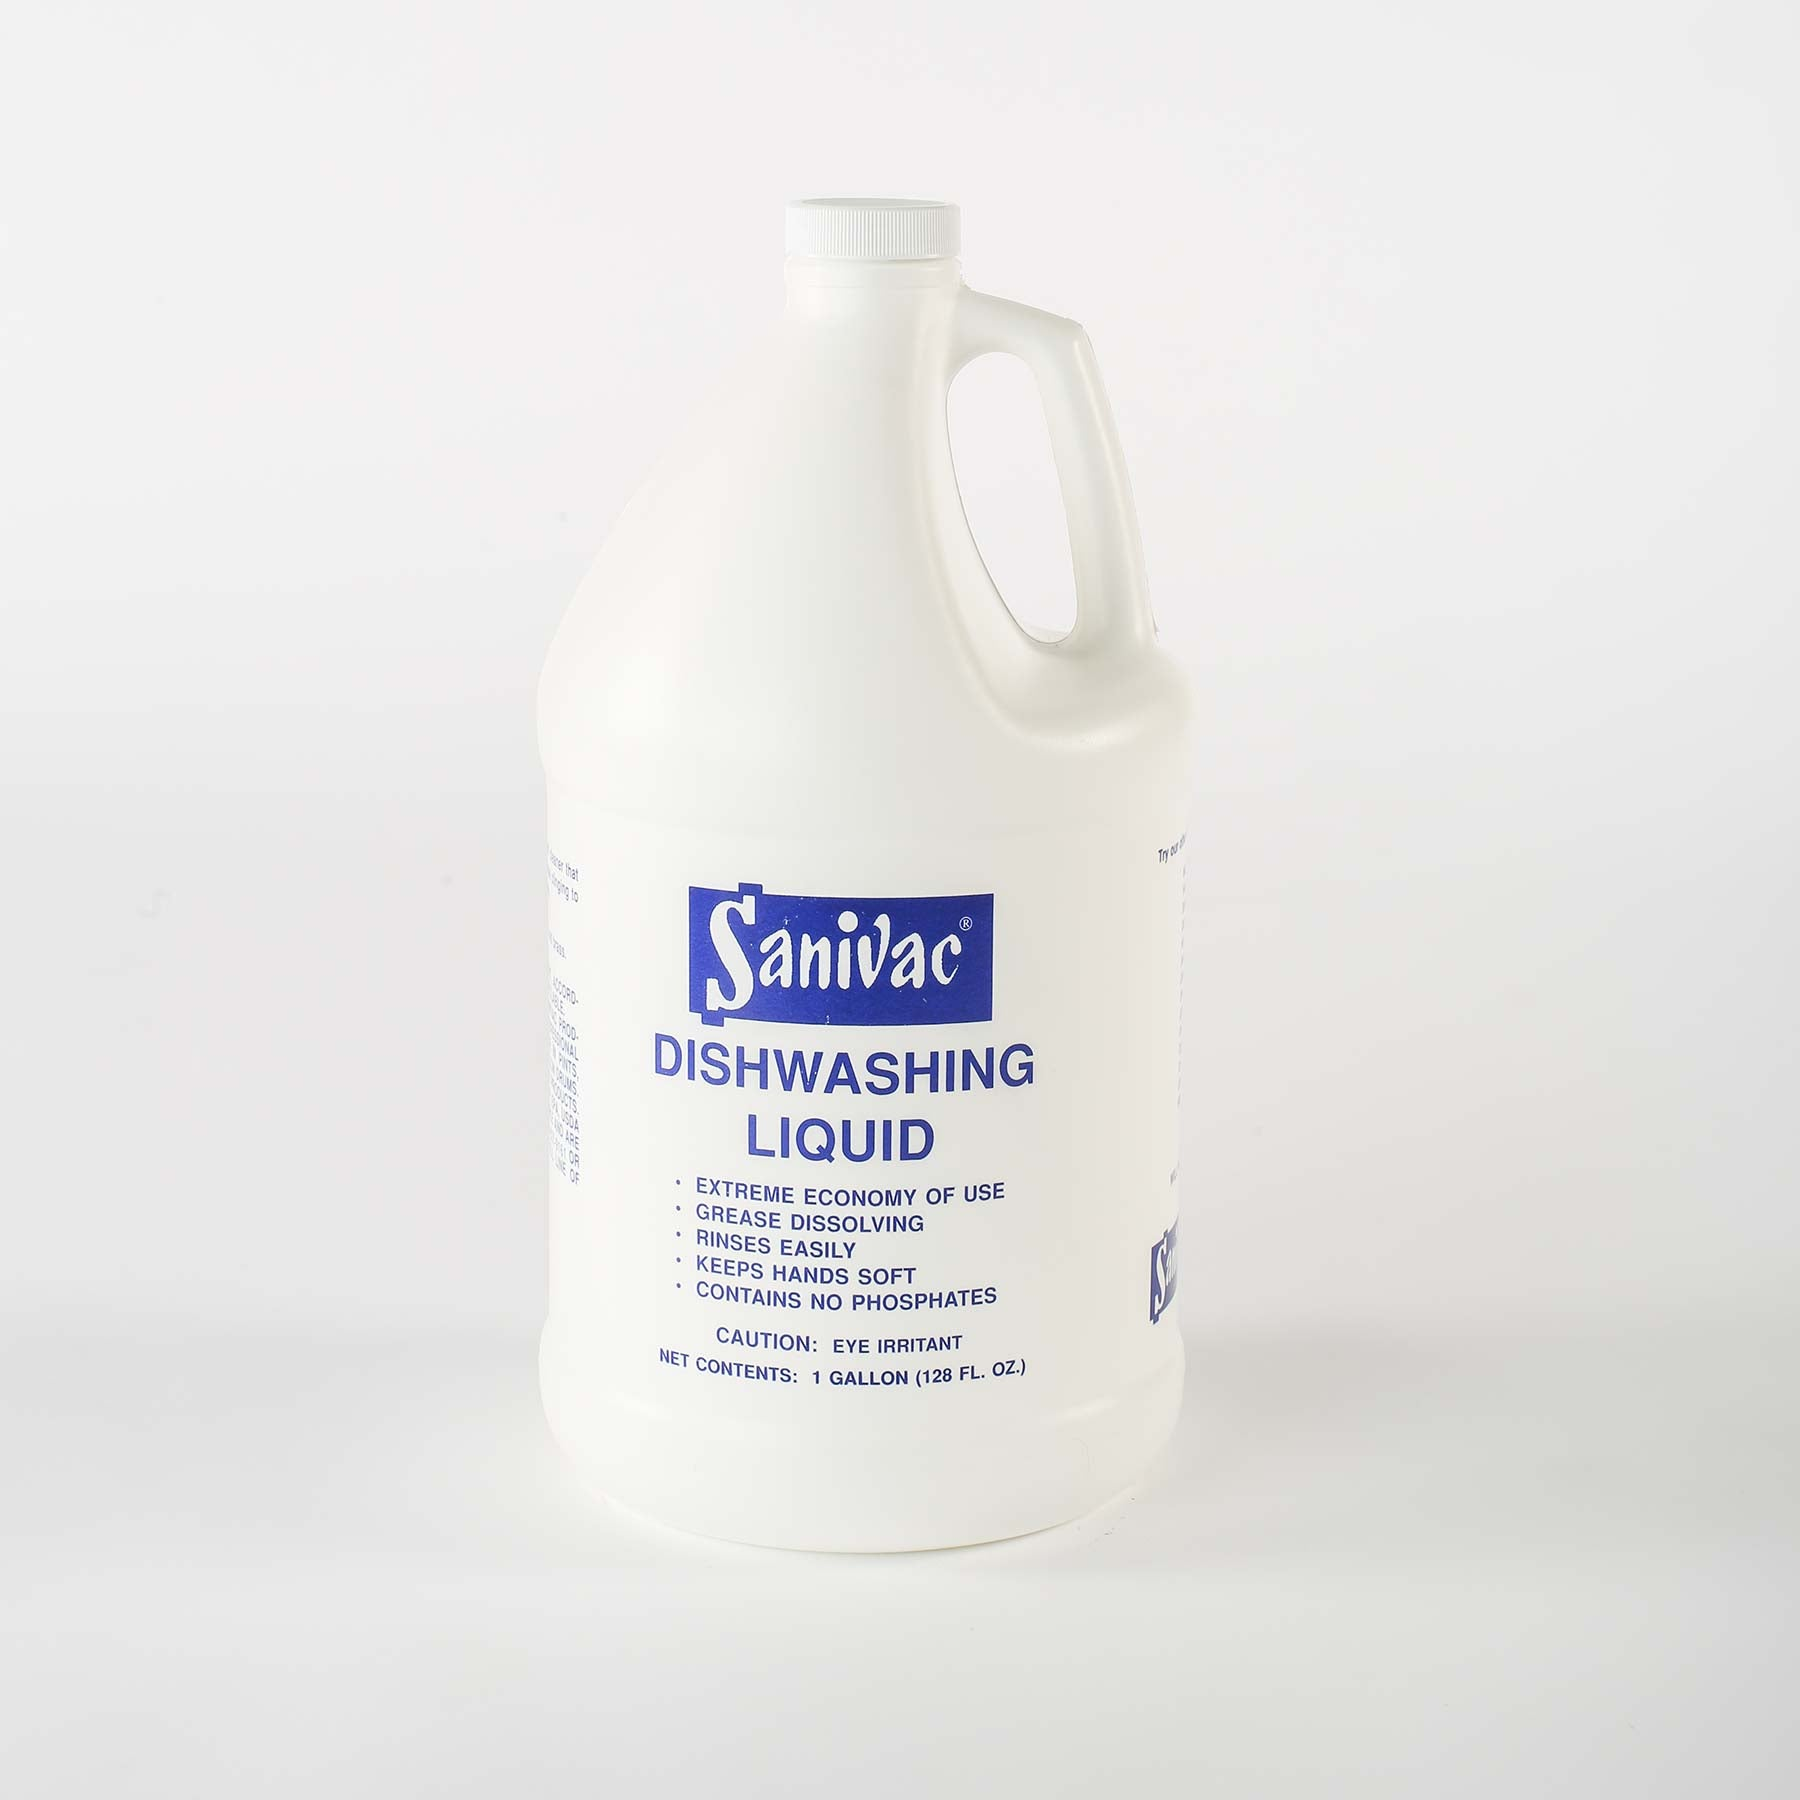 Sanivac Dishwashing Liquid